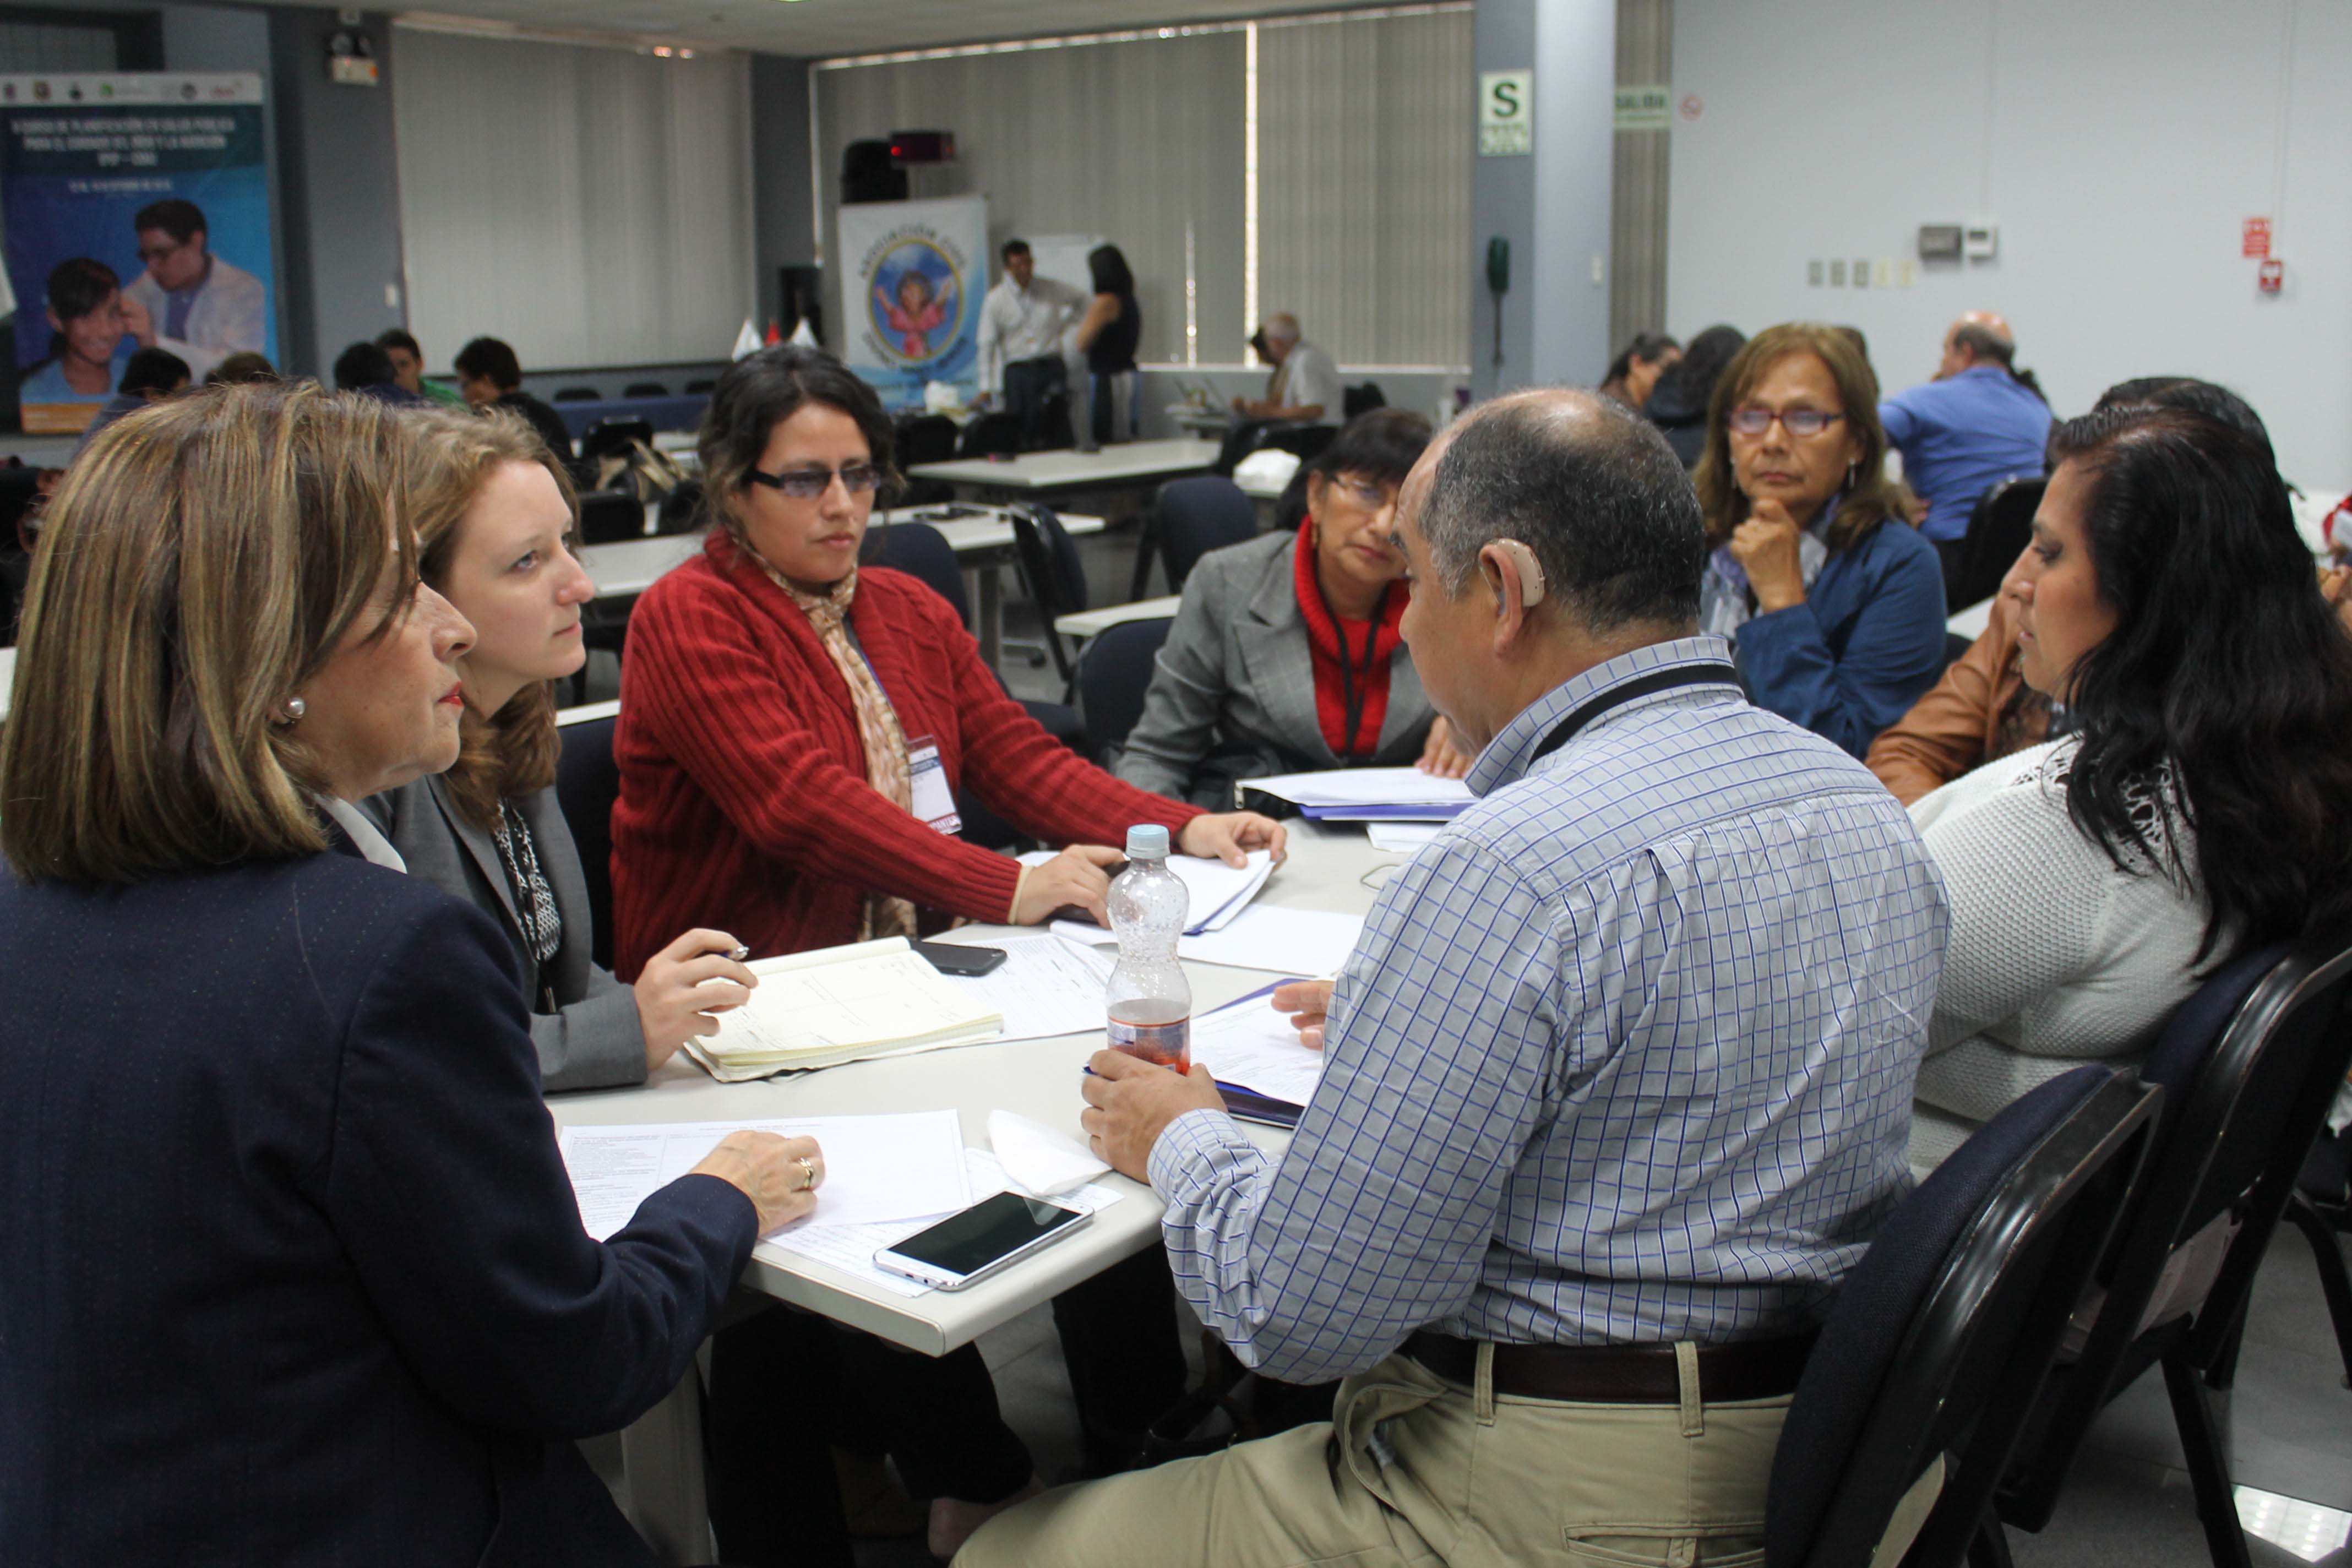 preventing-hearing-loss-in-peru-with-training-Peru-Hear-the-World-Foundation